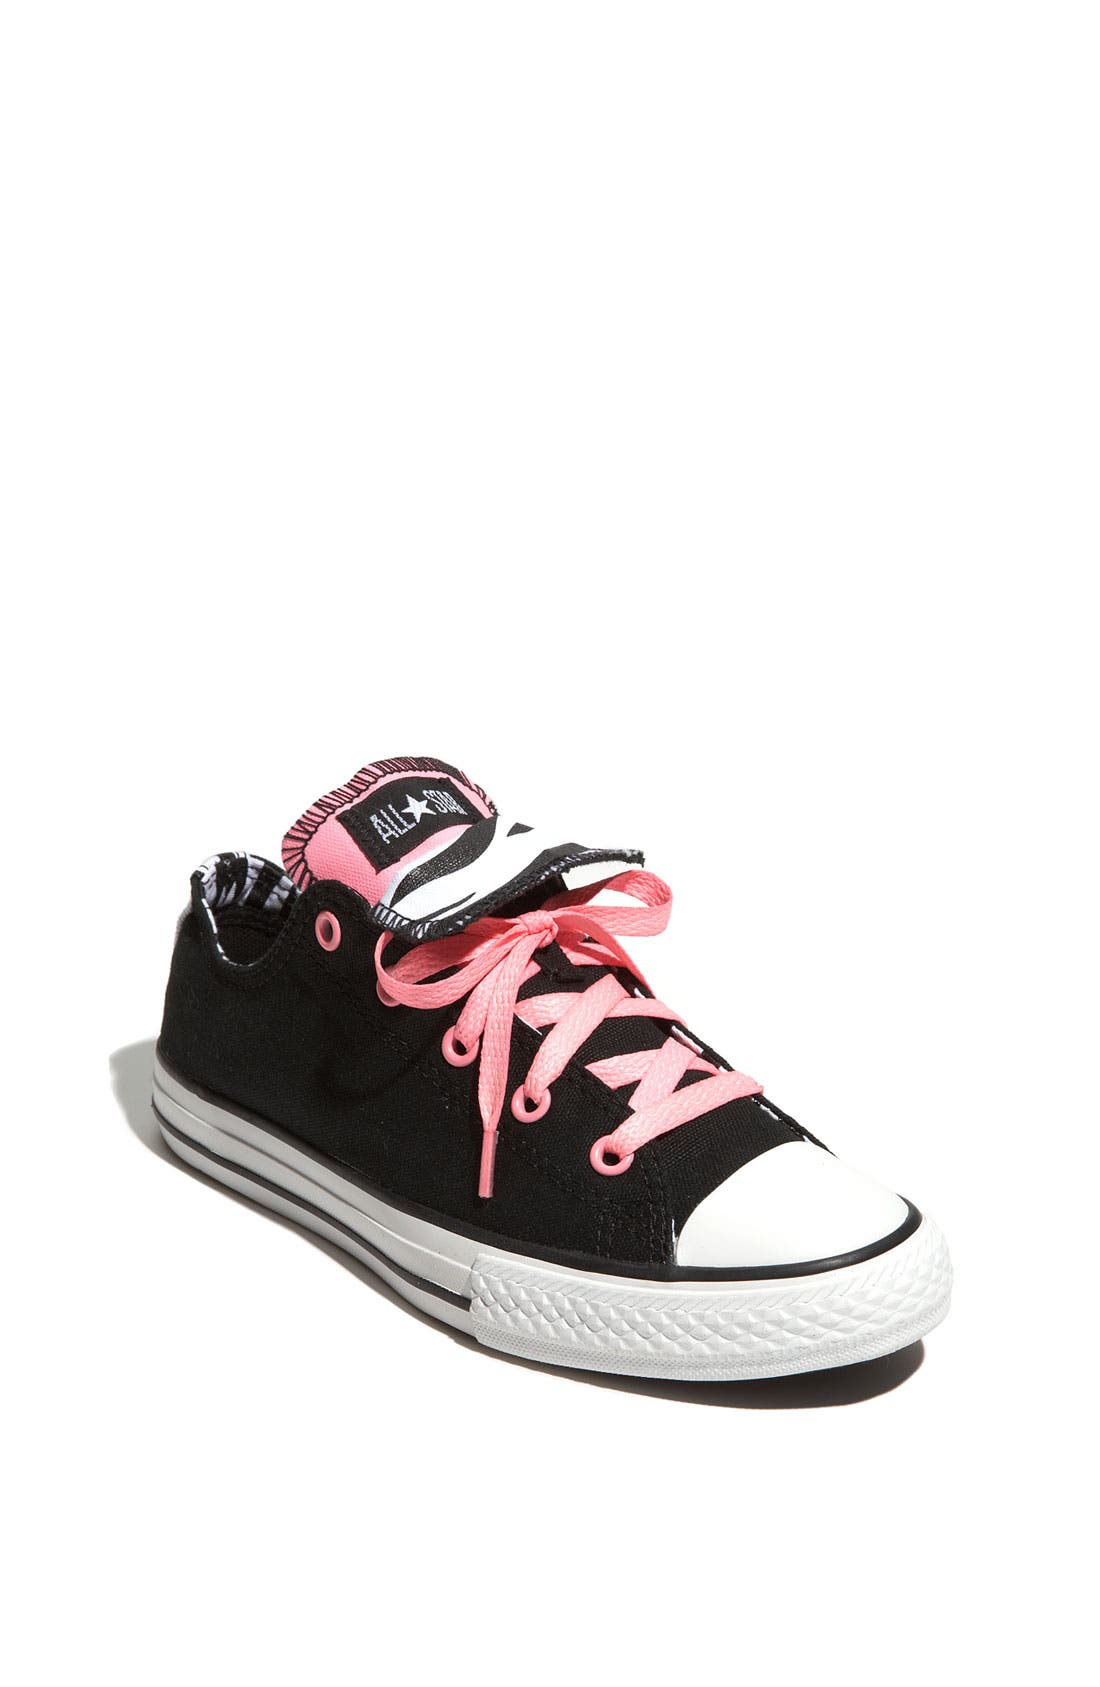 Alternate Image 1 Selected - Converse 'Glow Print' Sneaker (Toddler, Little Kid & Big Kid)